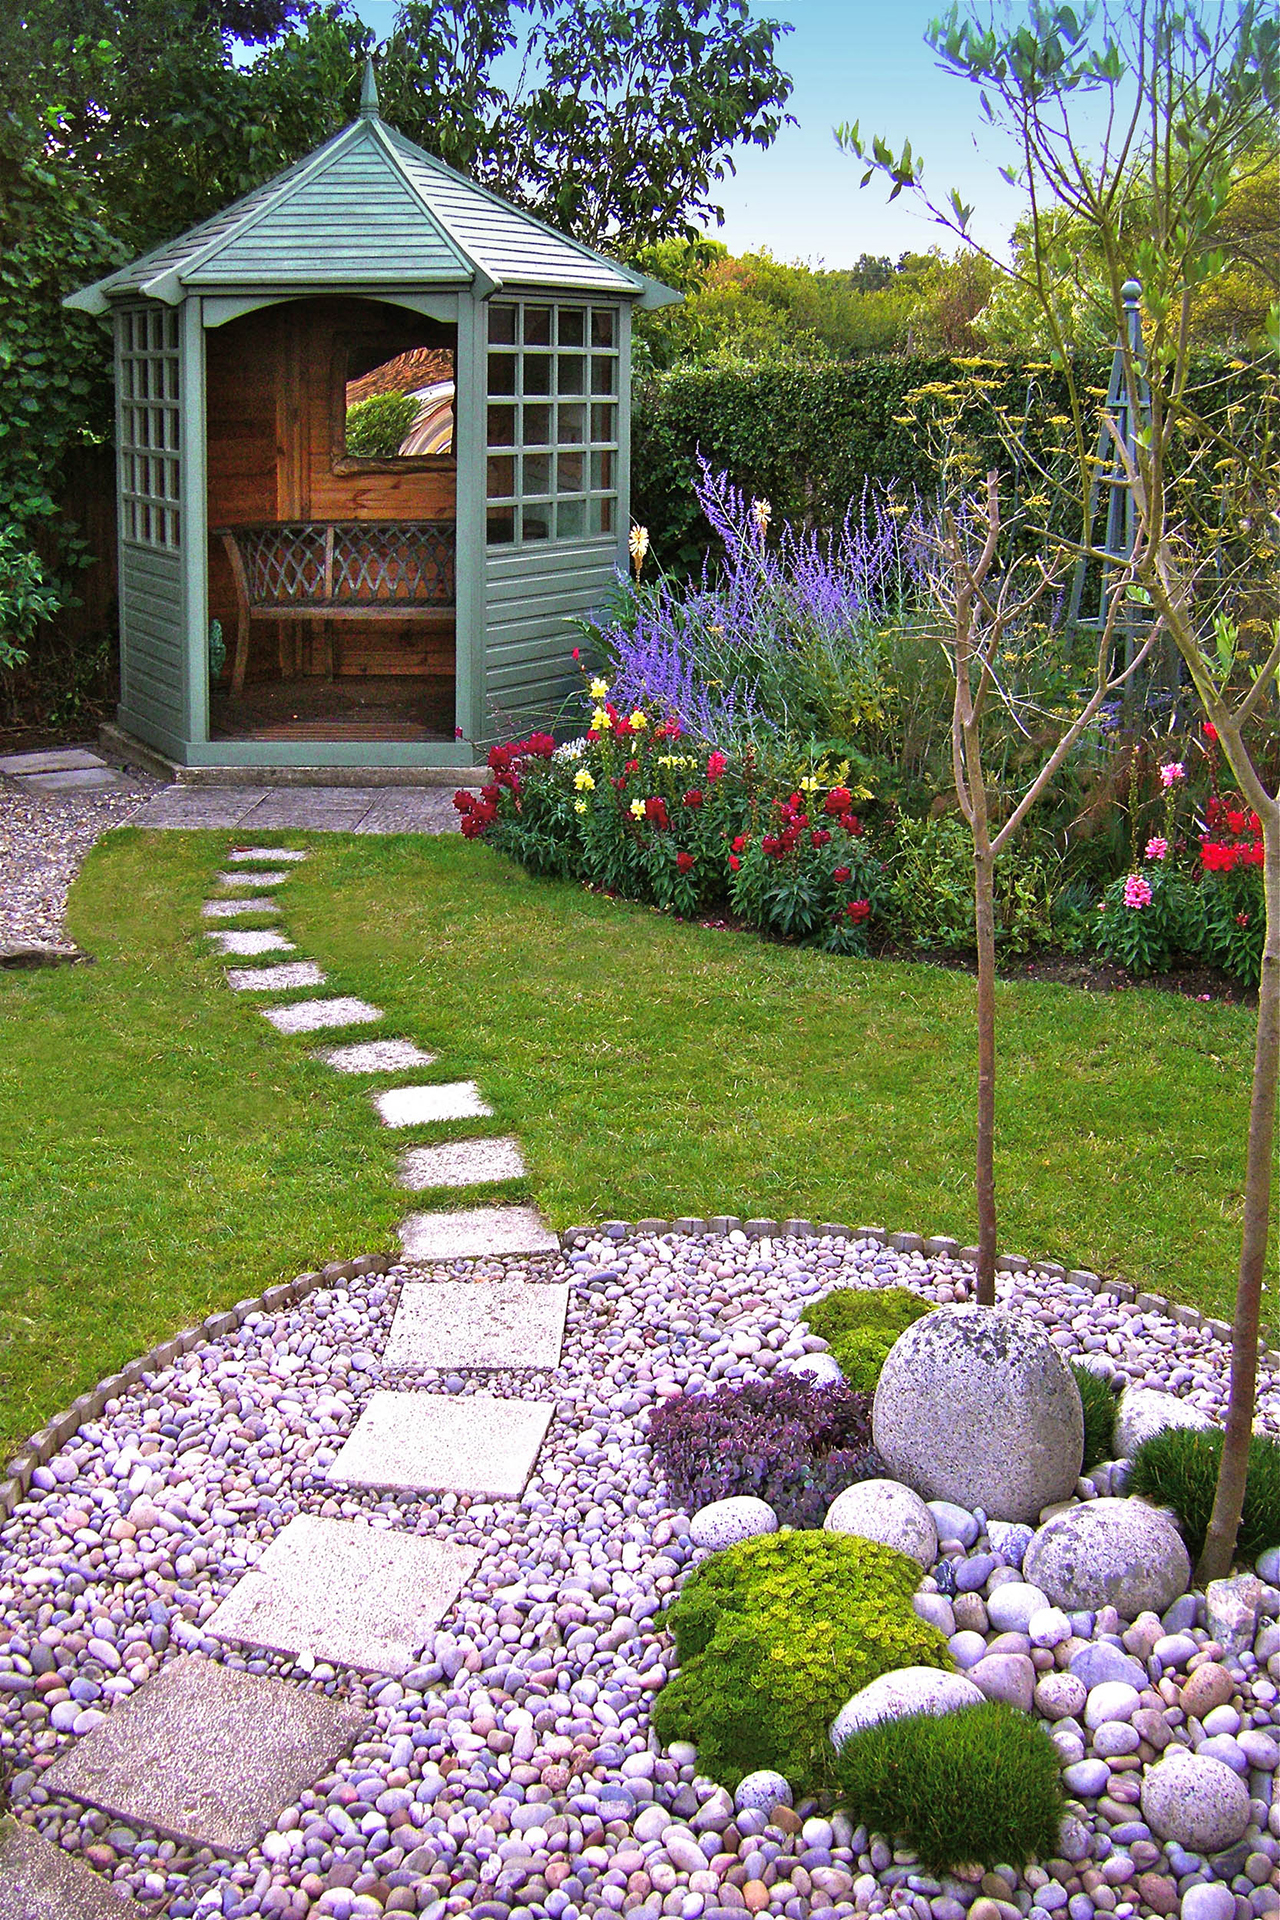 50 Best Backyard Landscaping Ideas and Designs in 2016 on Back Garden Patio Ideas  id=99697